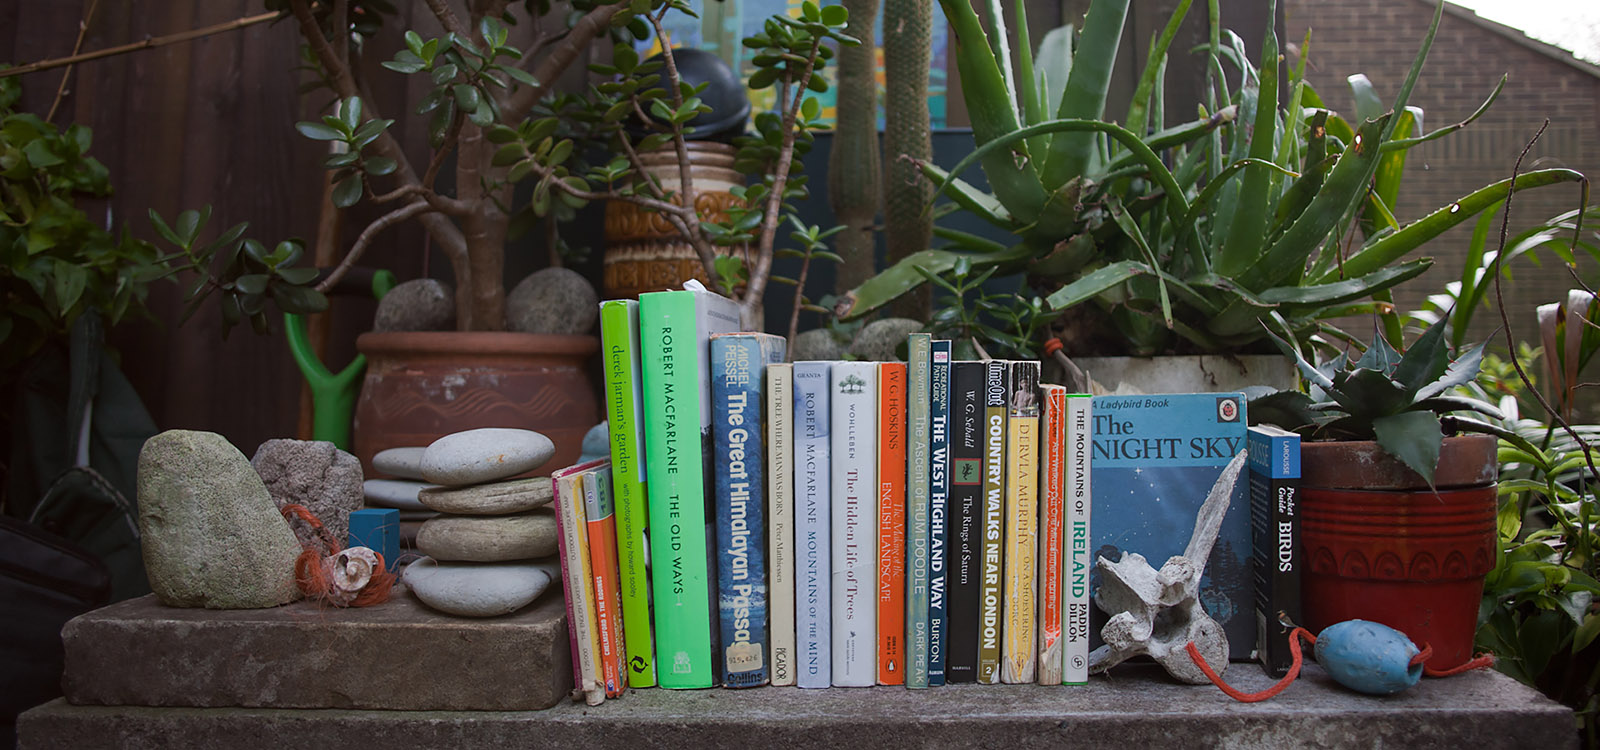 books on a concrete table surrounded by plants and detritus found in the hills and on beaches